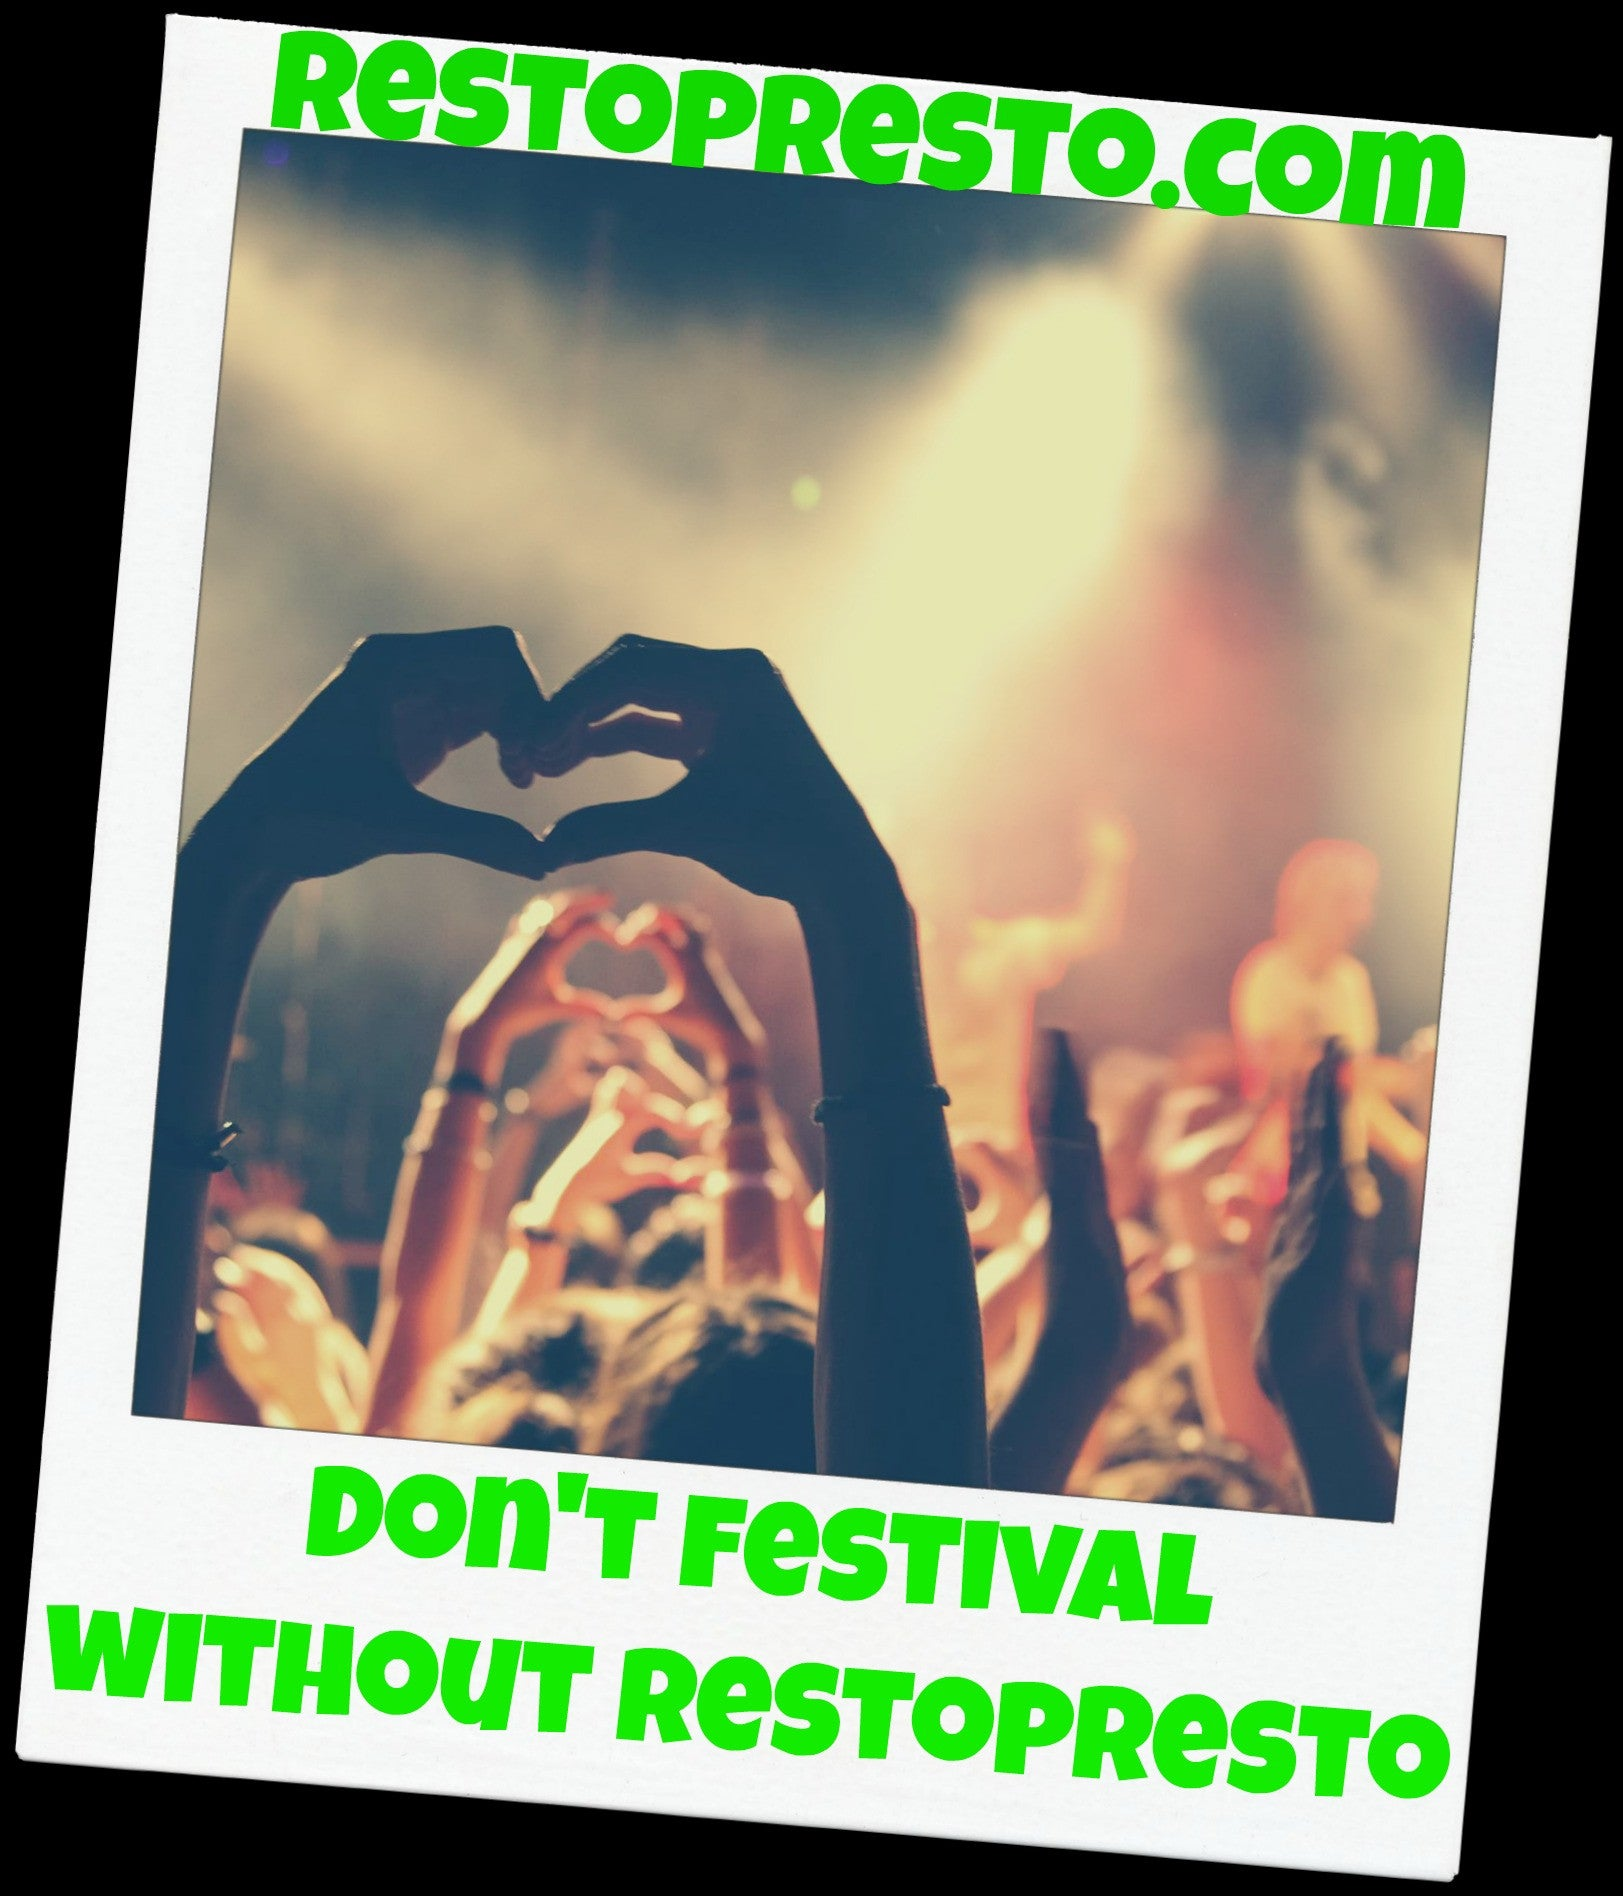 4 Ways RestoPresto makes festivals easier!